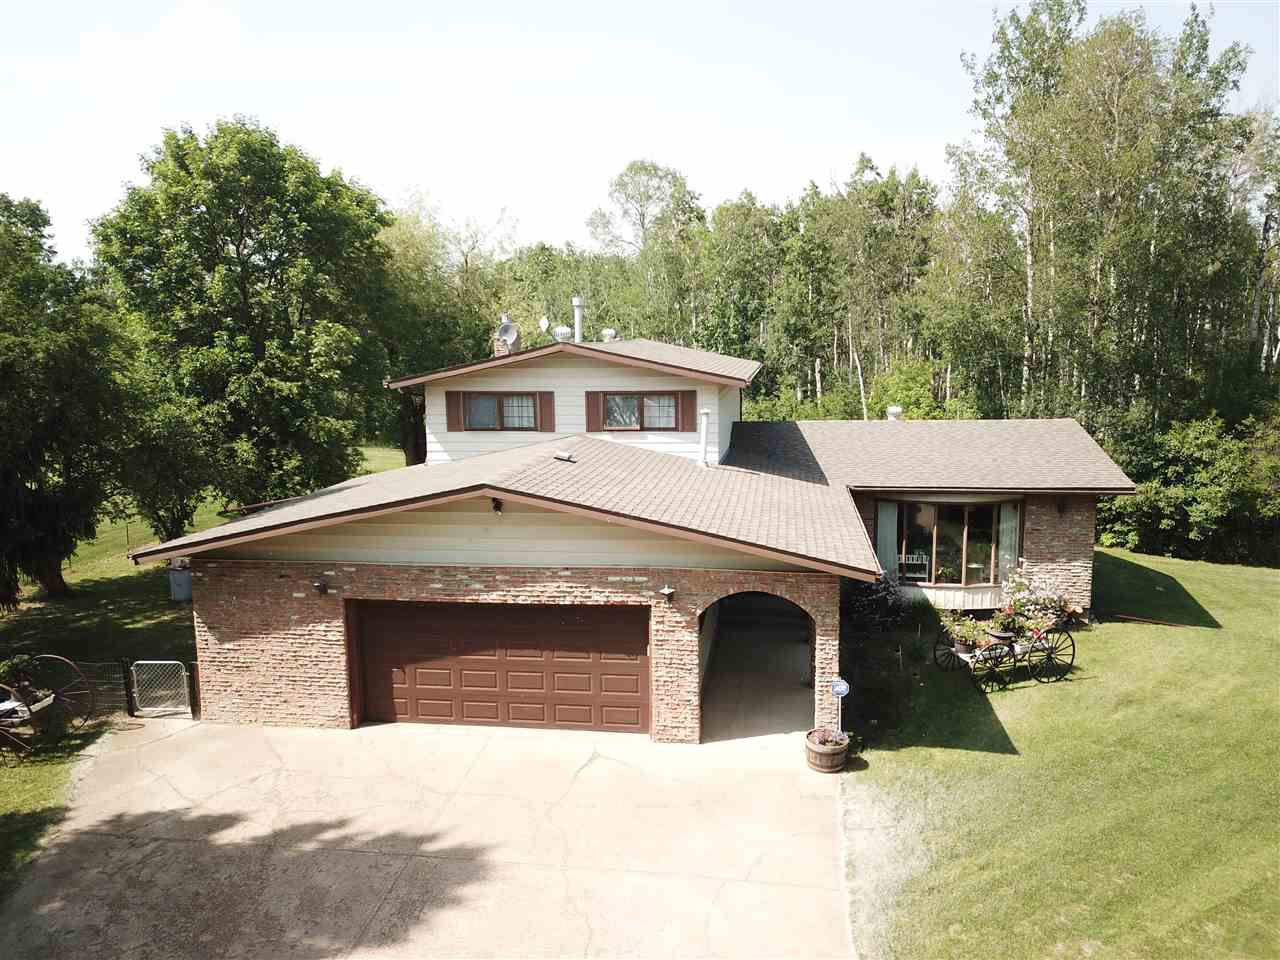 Main Photo: 21 53304 RGE RD 14: Rural Parkland County House for sale : MLS®# E4152161